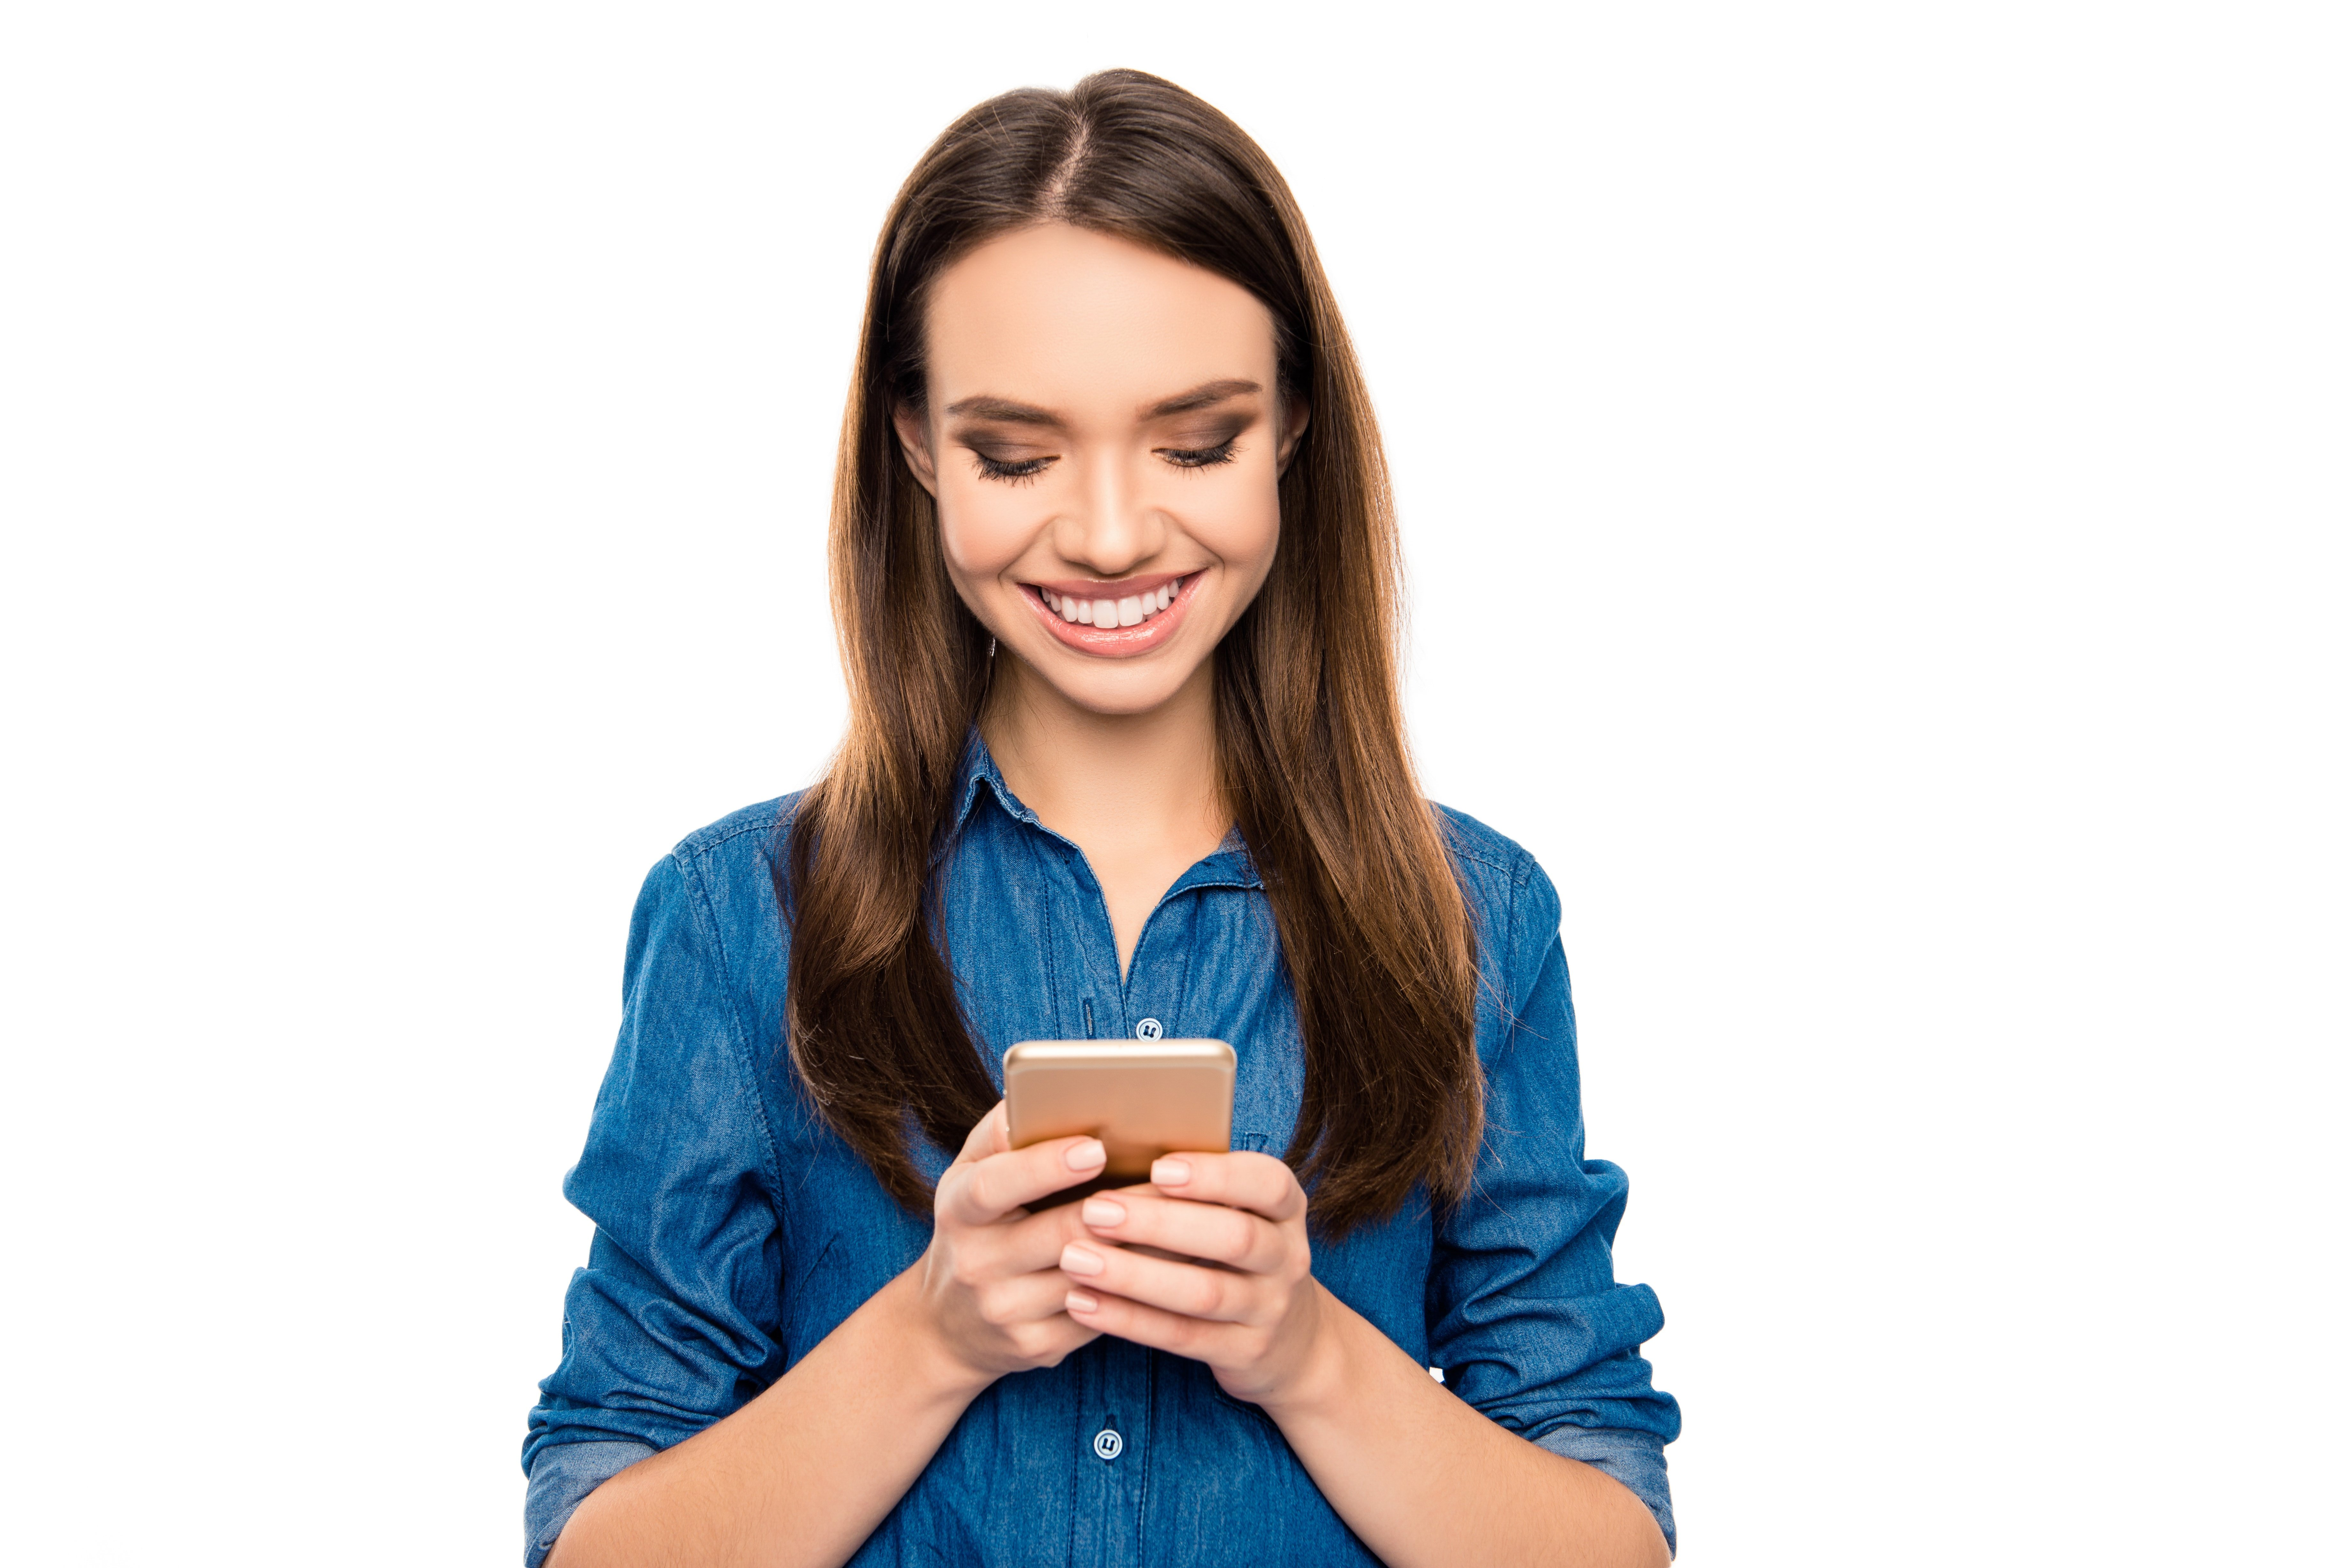 SDK on the Spot: Emotion-Enabled App Hopes to Make People Happier - One Smile at a Time.